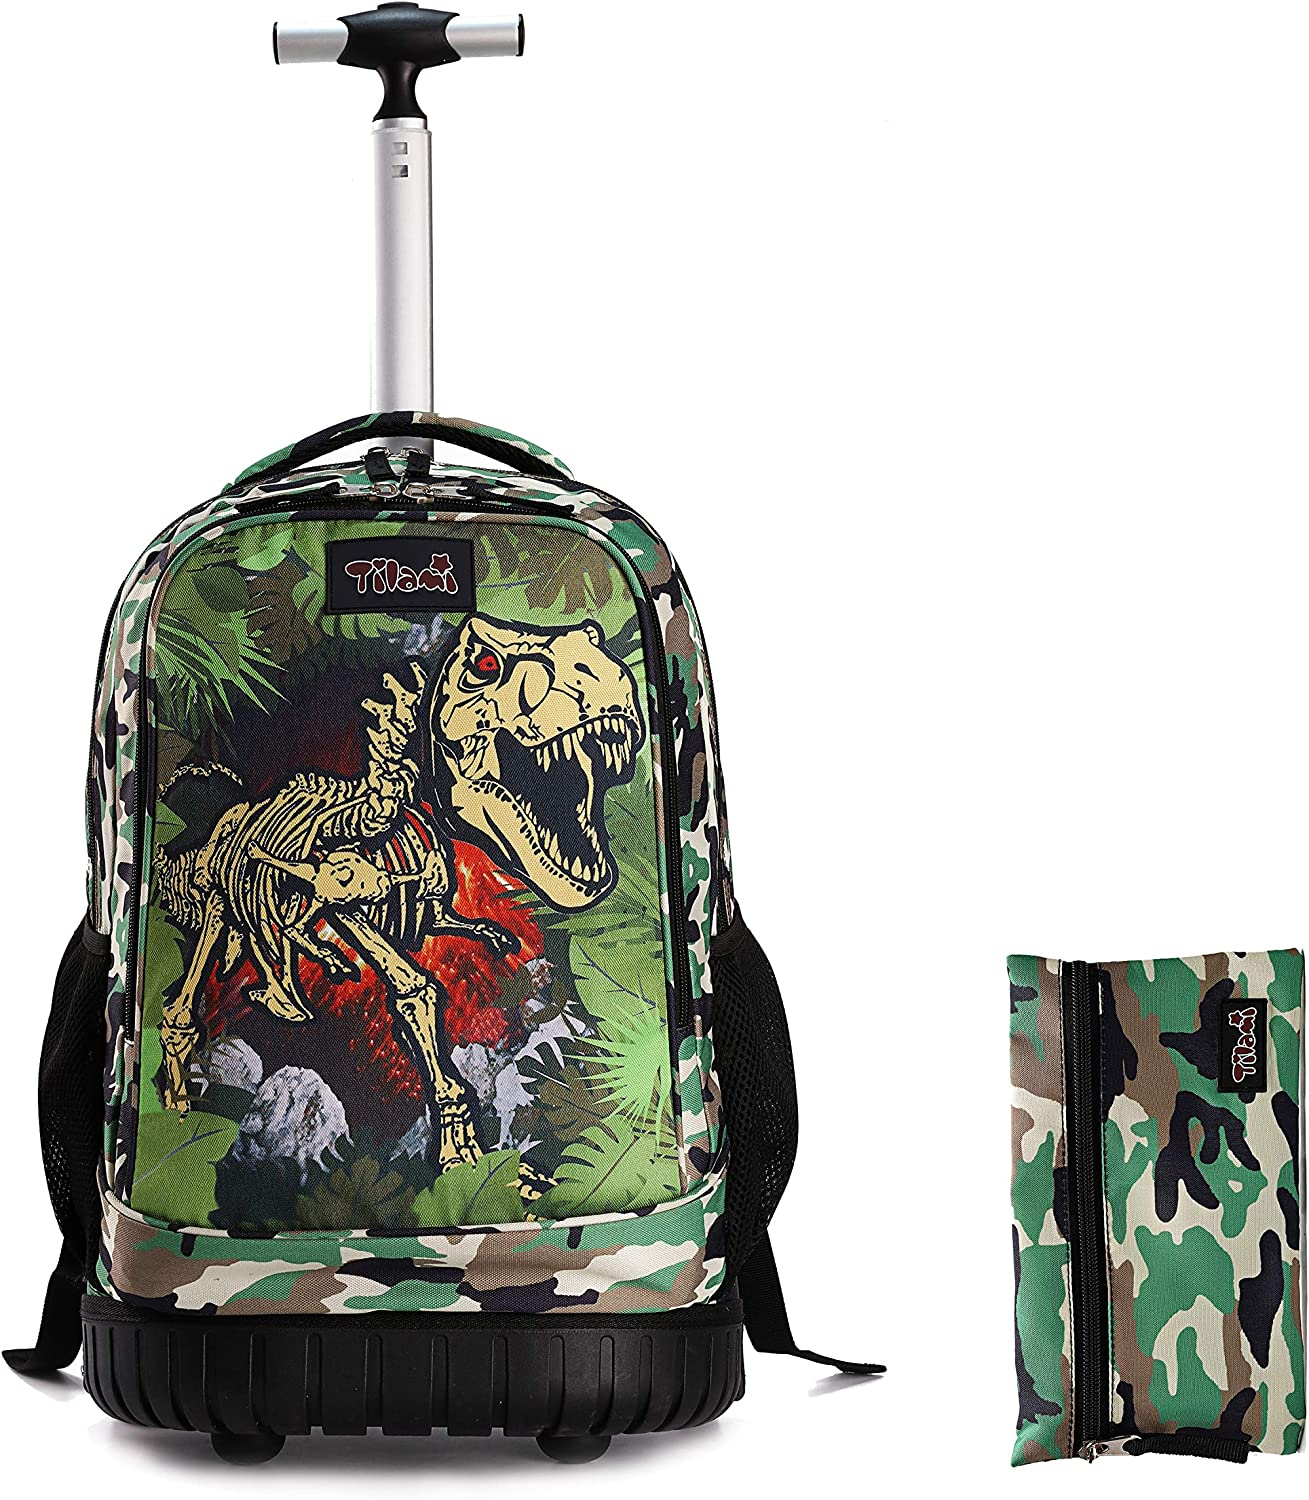 Tilami Rolling Backpack 18 inch with Pencil Case Wheeled Laptop Bag, Dinosaur Camouflage